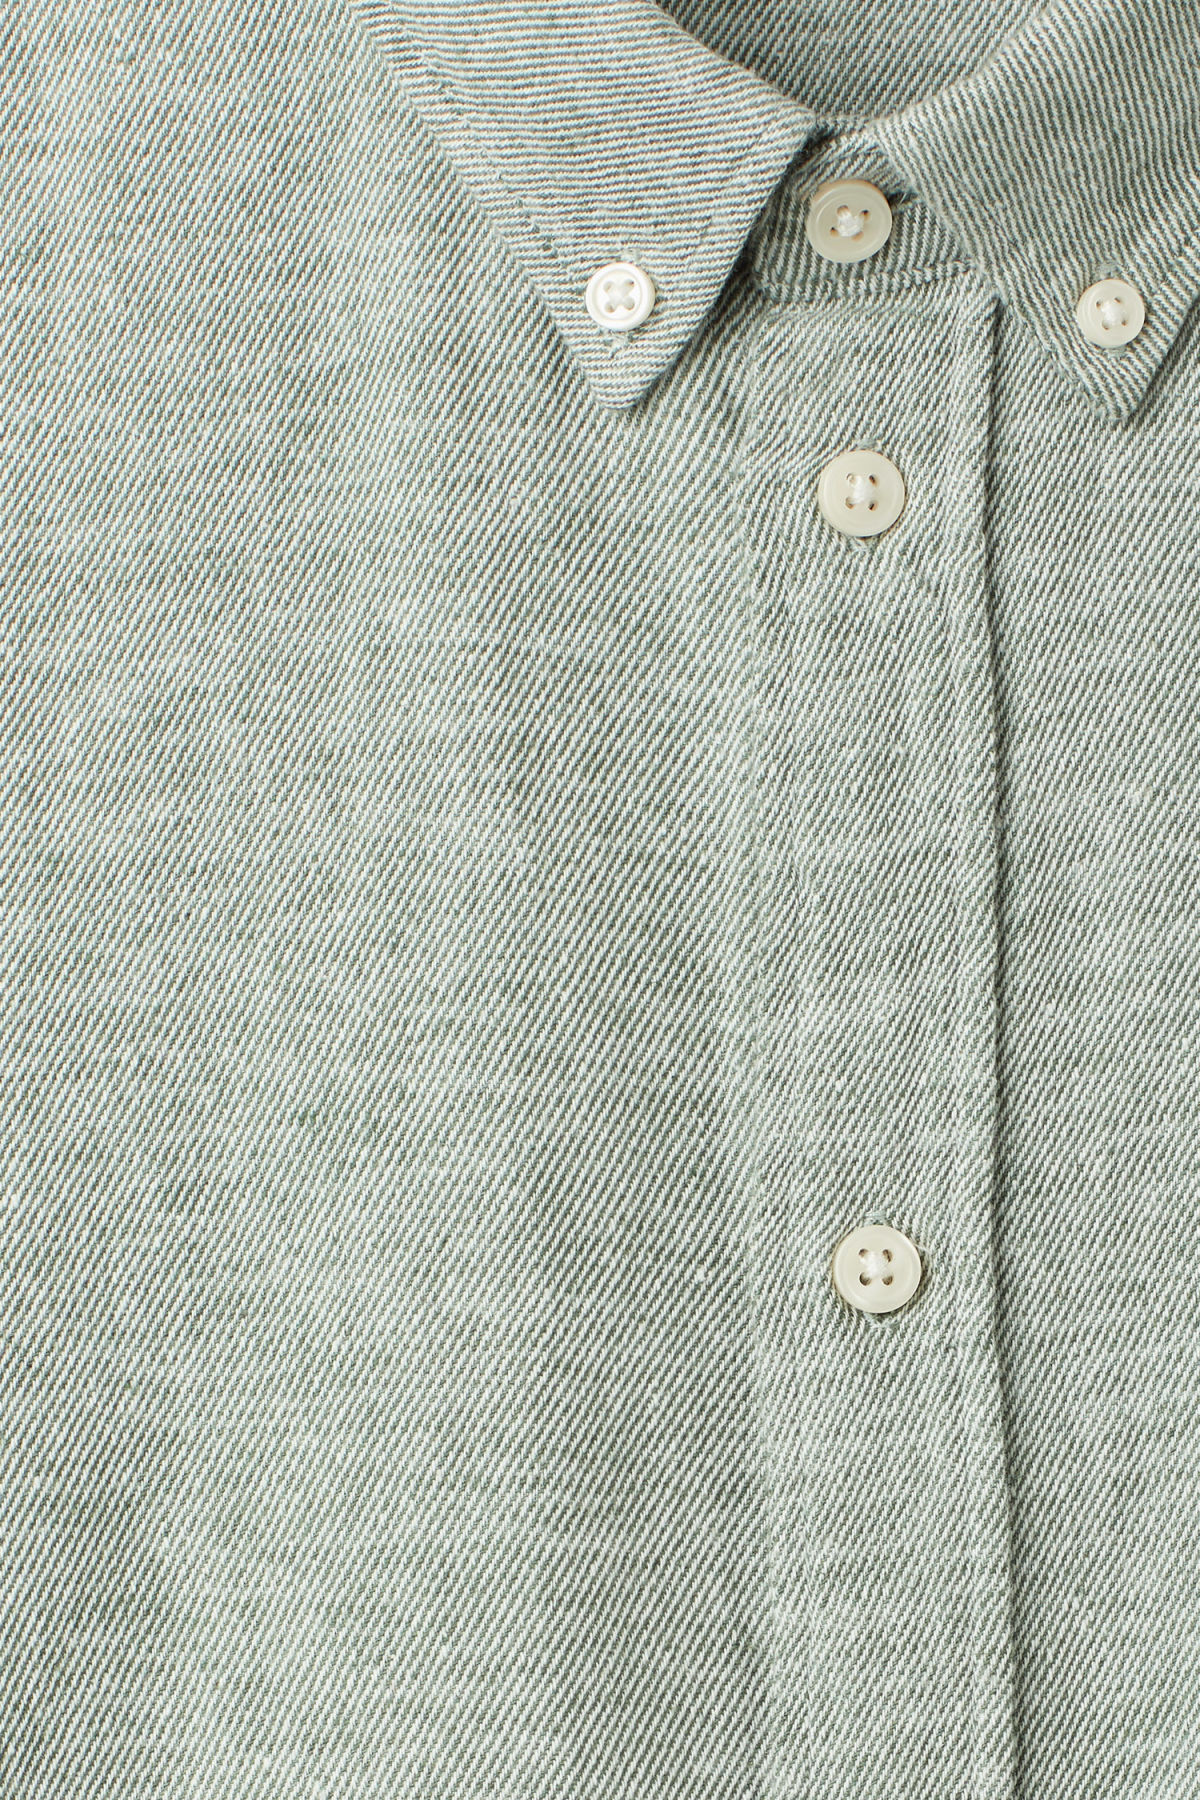 Detailed image of Weekday seattle twotwill shirt in green